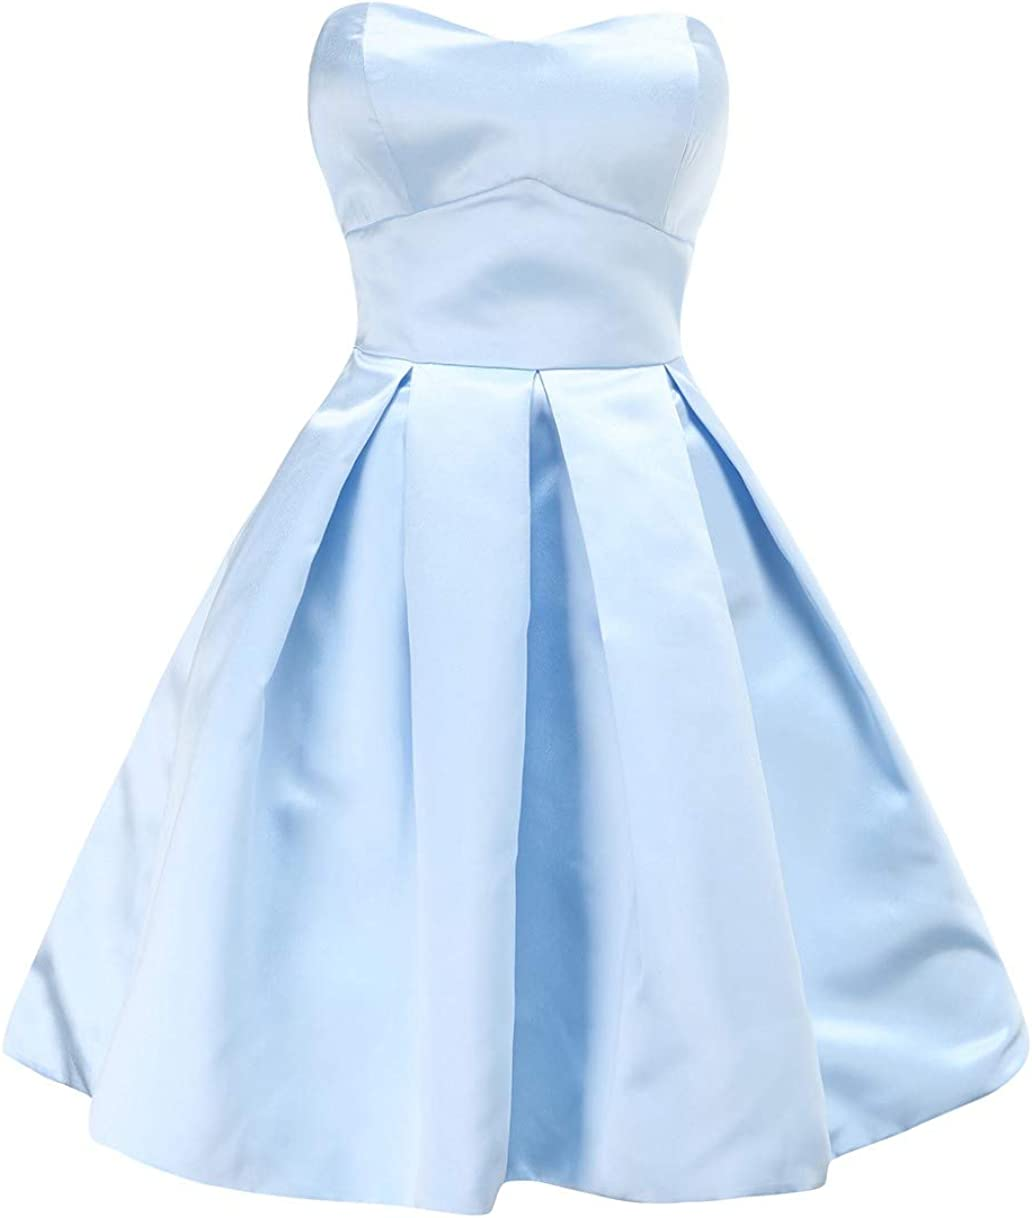 ANGELWARDROBE Sexy Cocktail Dresses for Women, A-Line Short Prom Dresses 2021 for Teens with Pockets